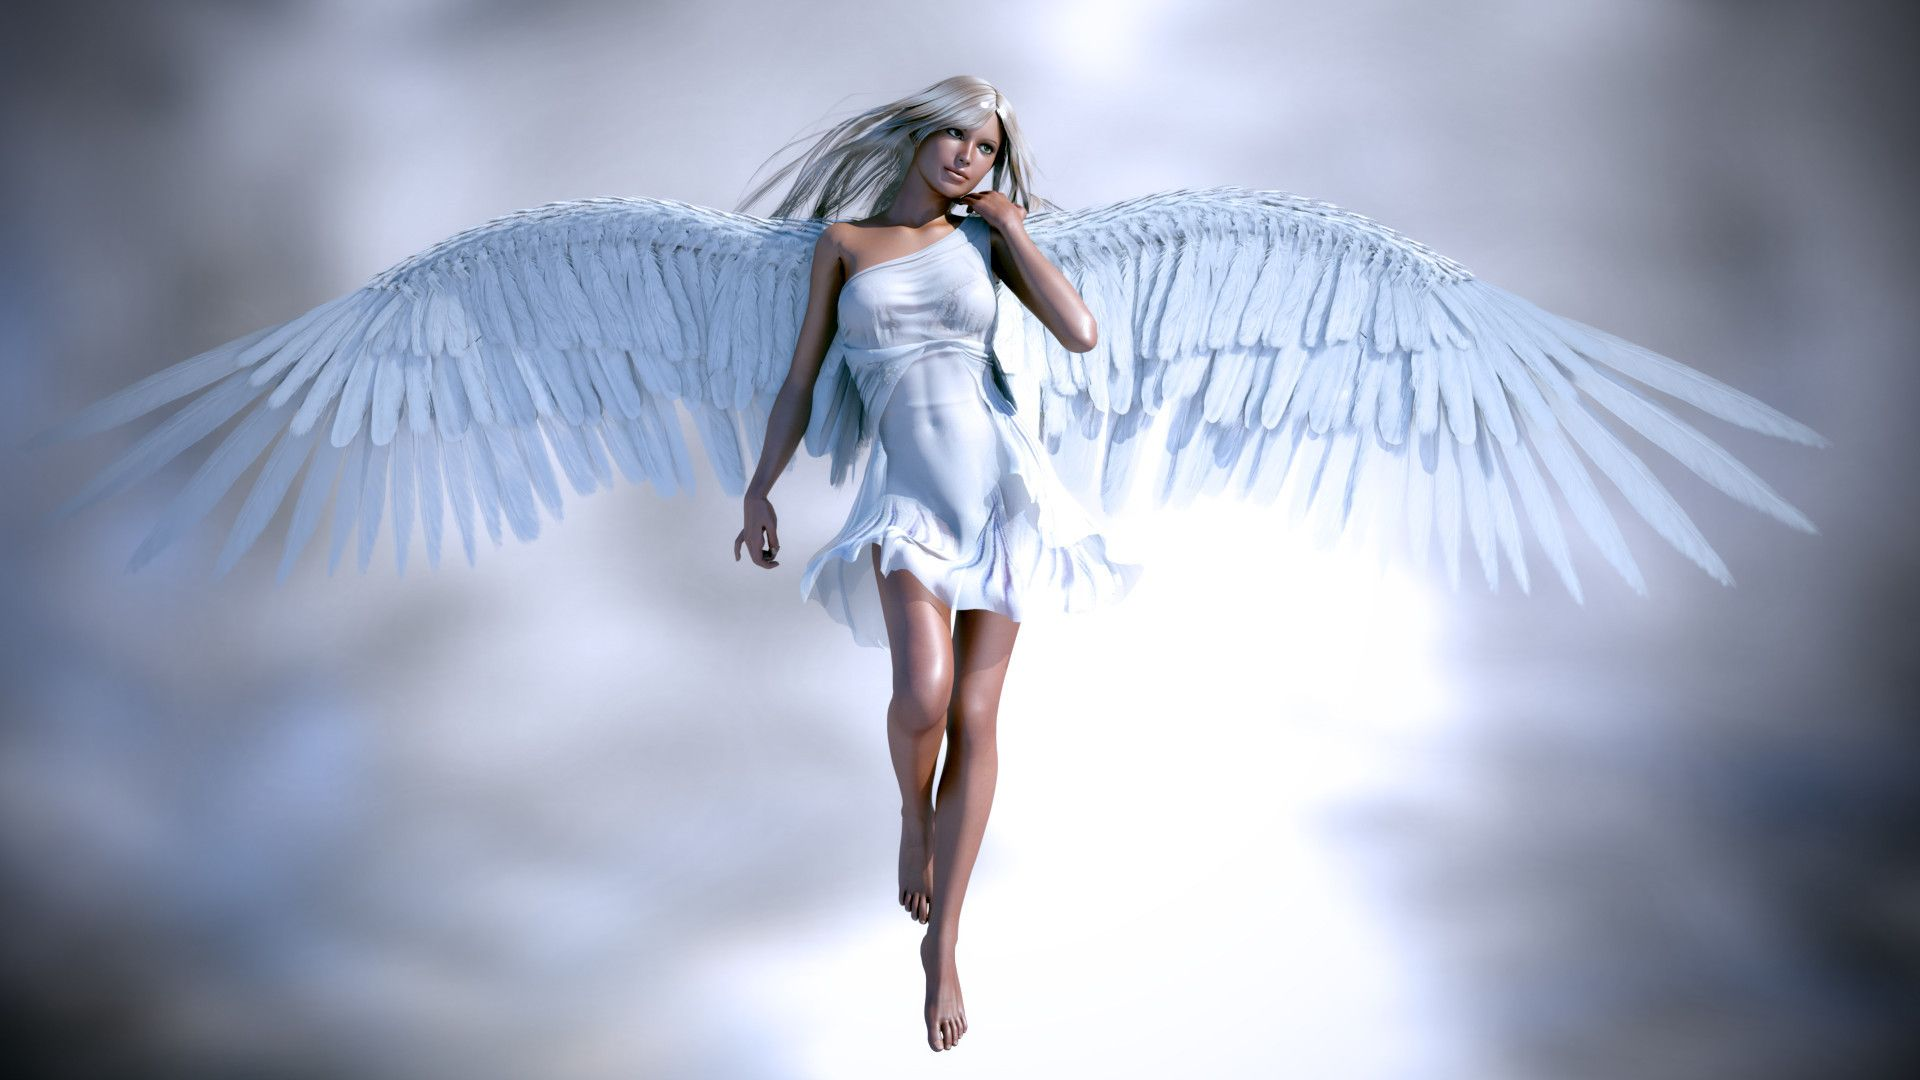 Girl With Angel Wings Pictures